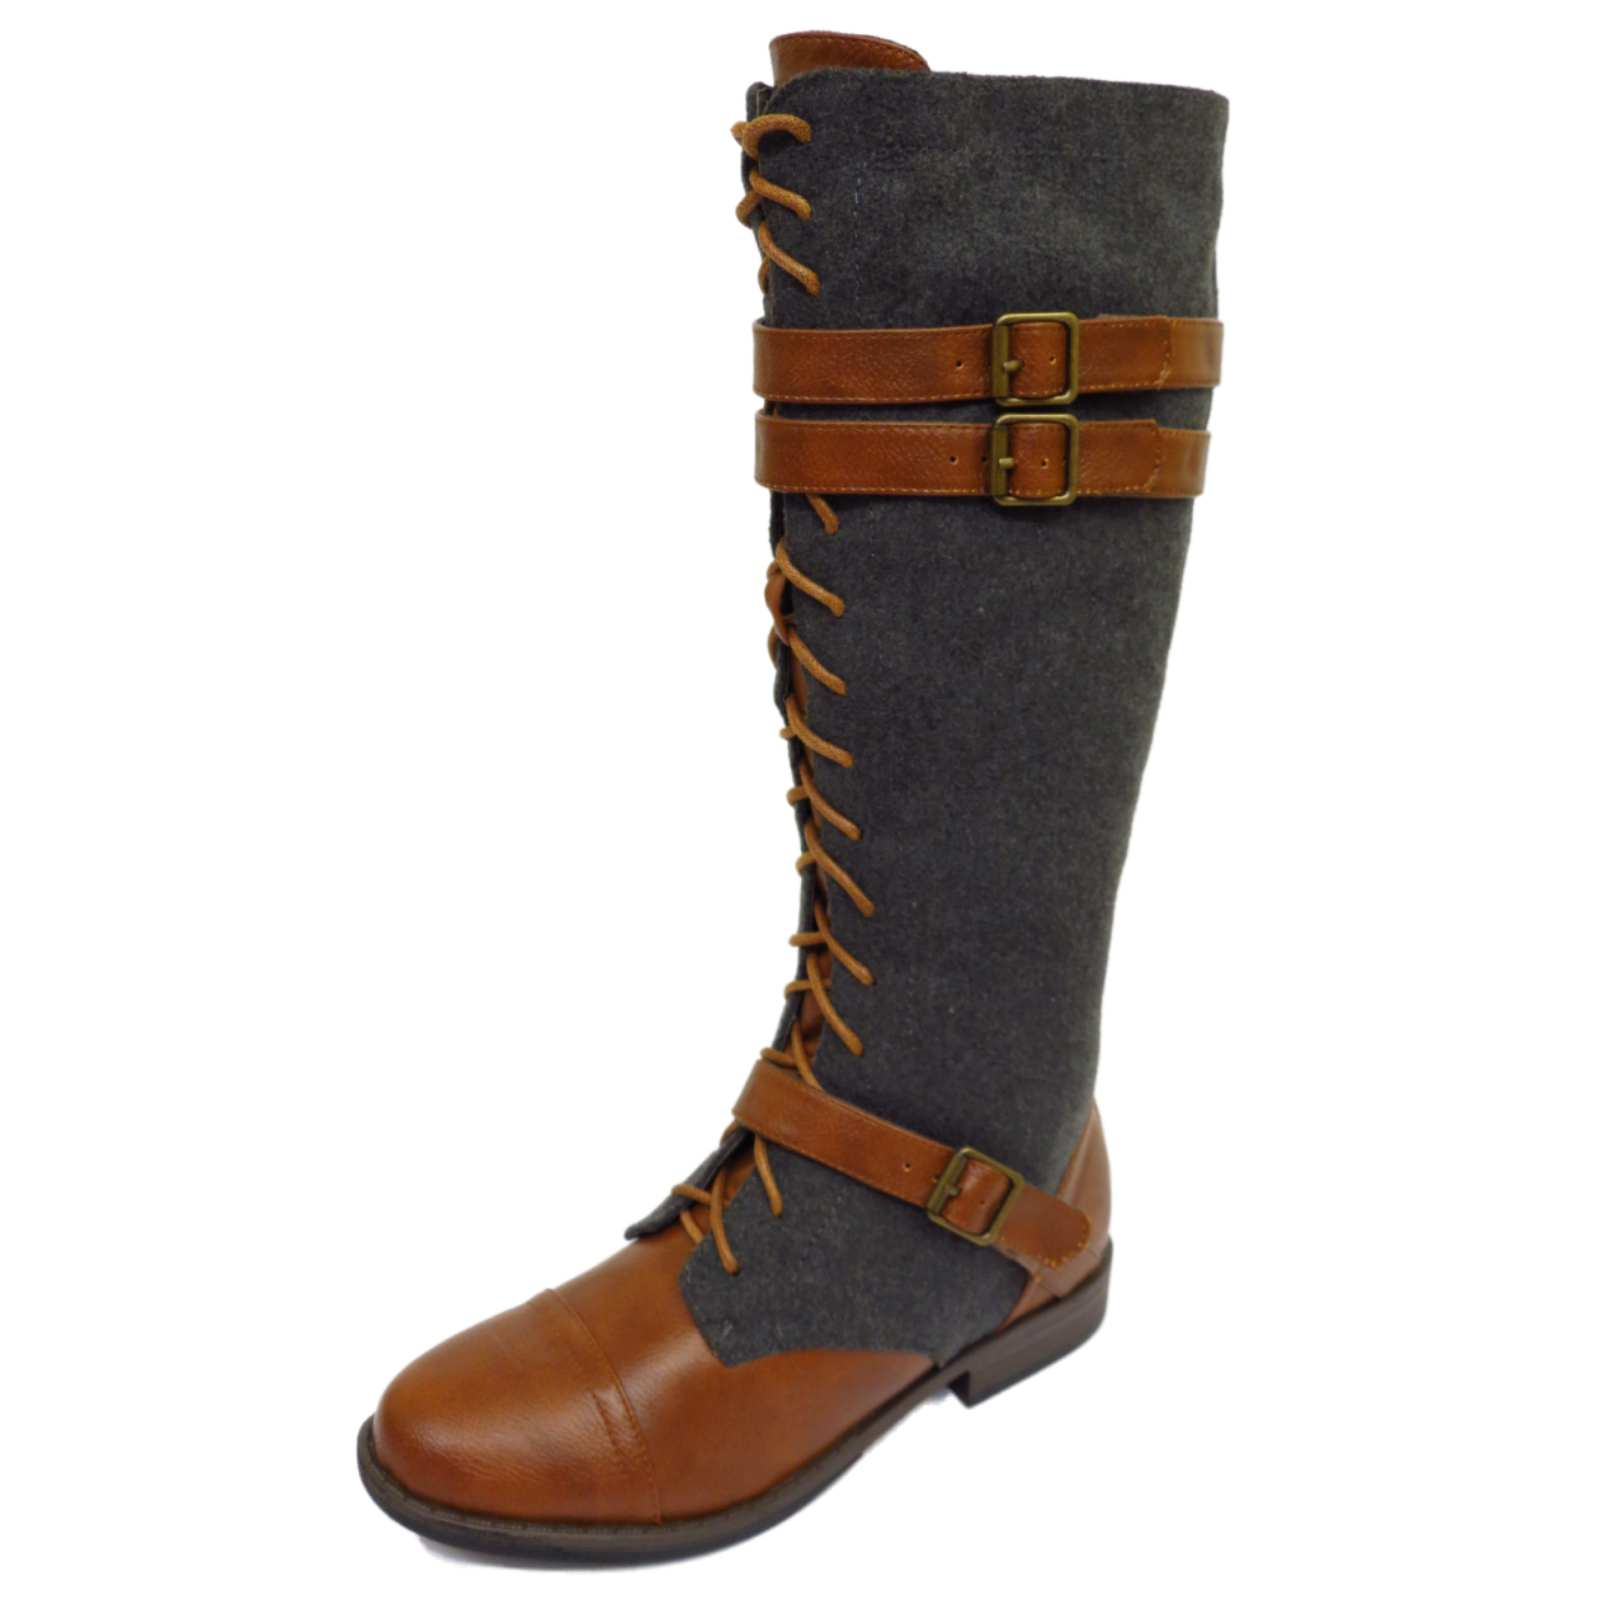 Find great deals on eBay for womens flat knee high boots. Shop with confidence.